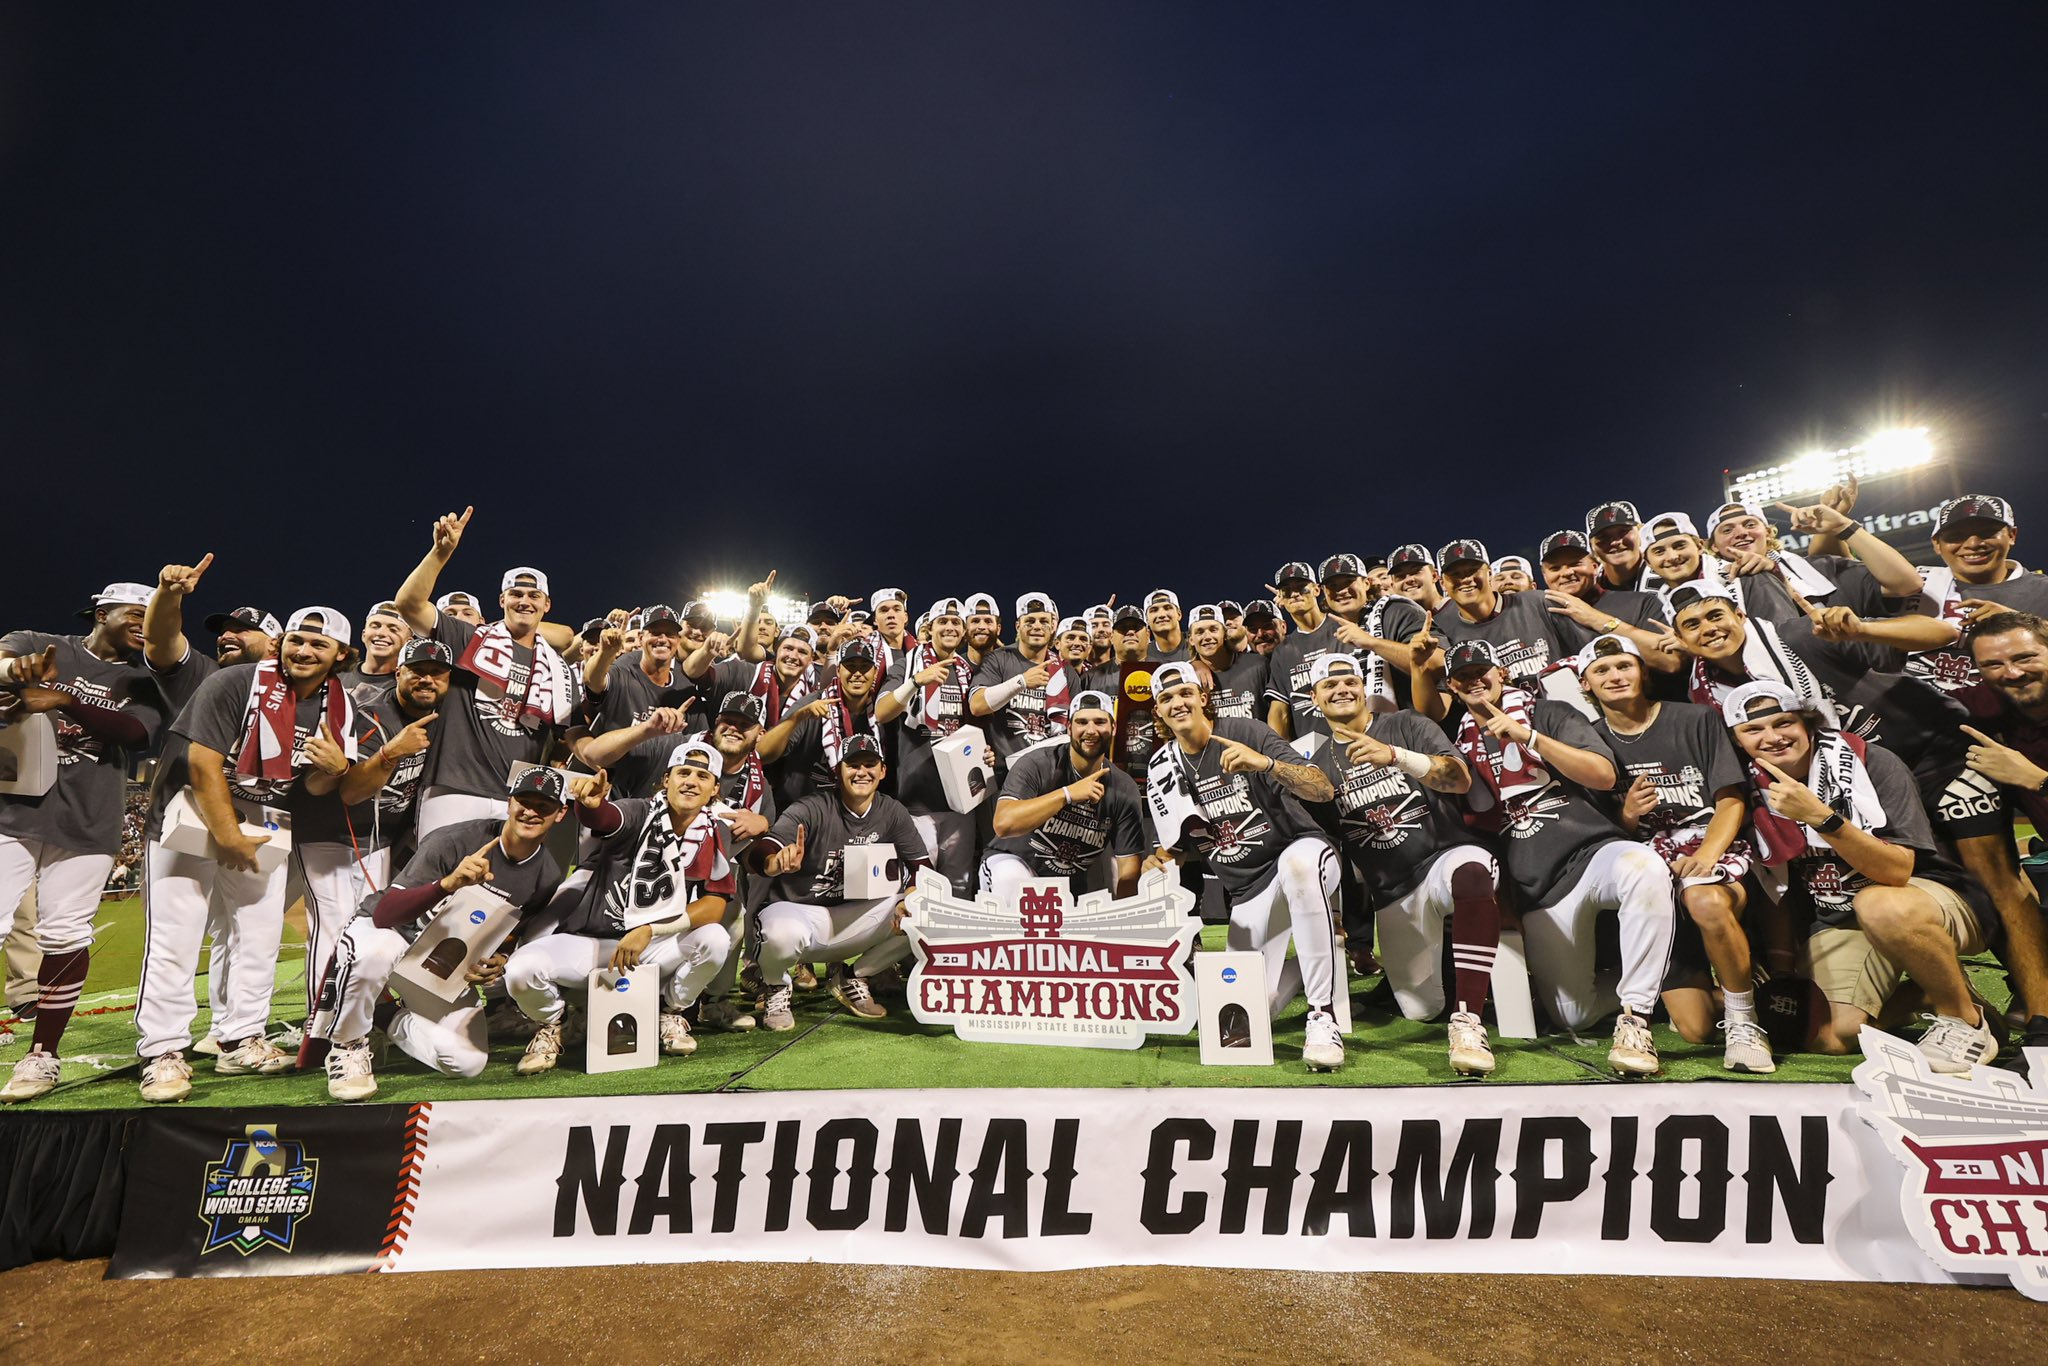 THE 2021 #CWS NATIONAL CHAMPIONS!   #HailState🐶   #OmaDawgs https://t.co/k8UwZ7uwbJ